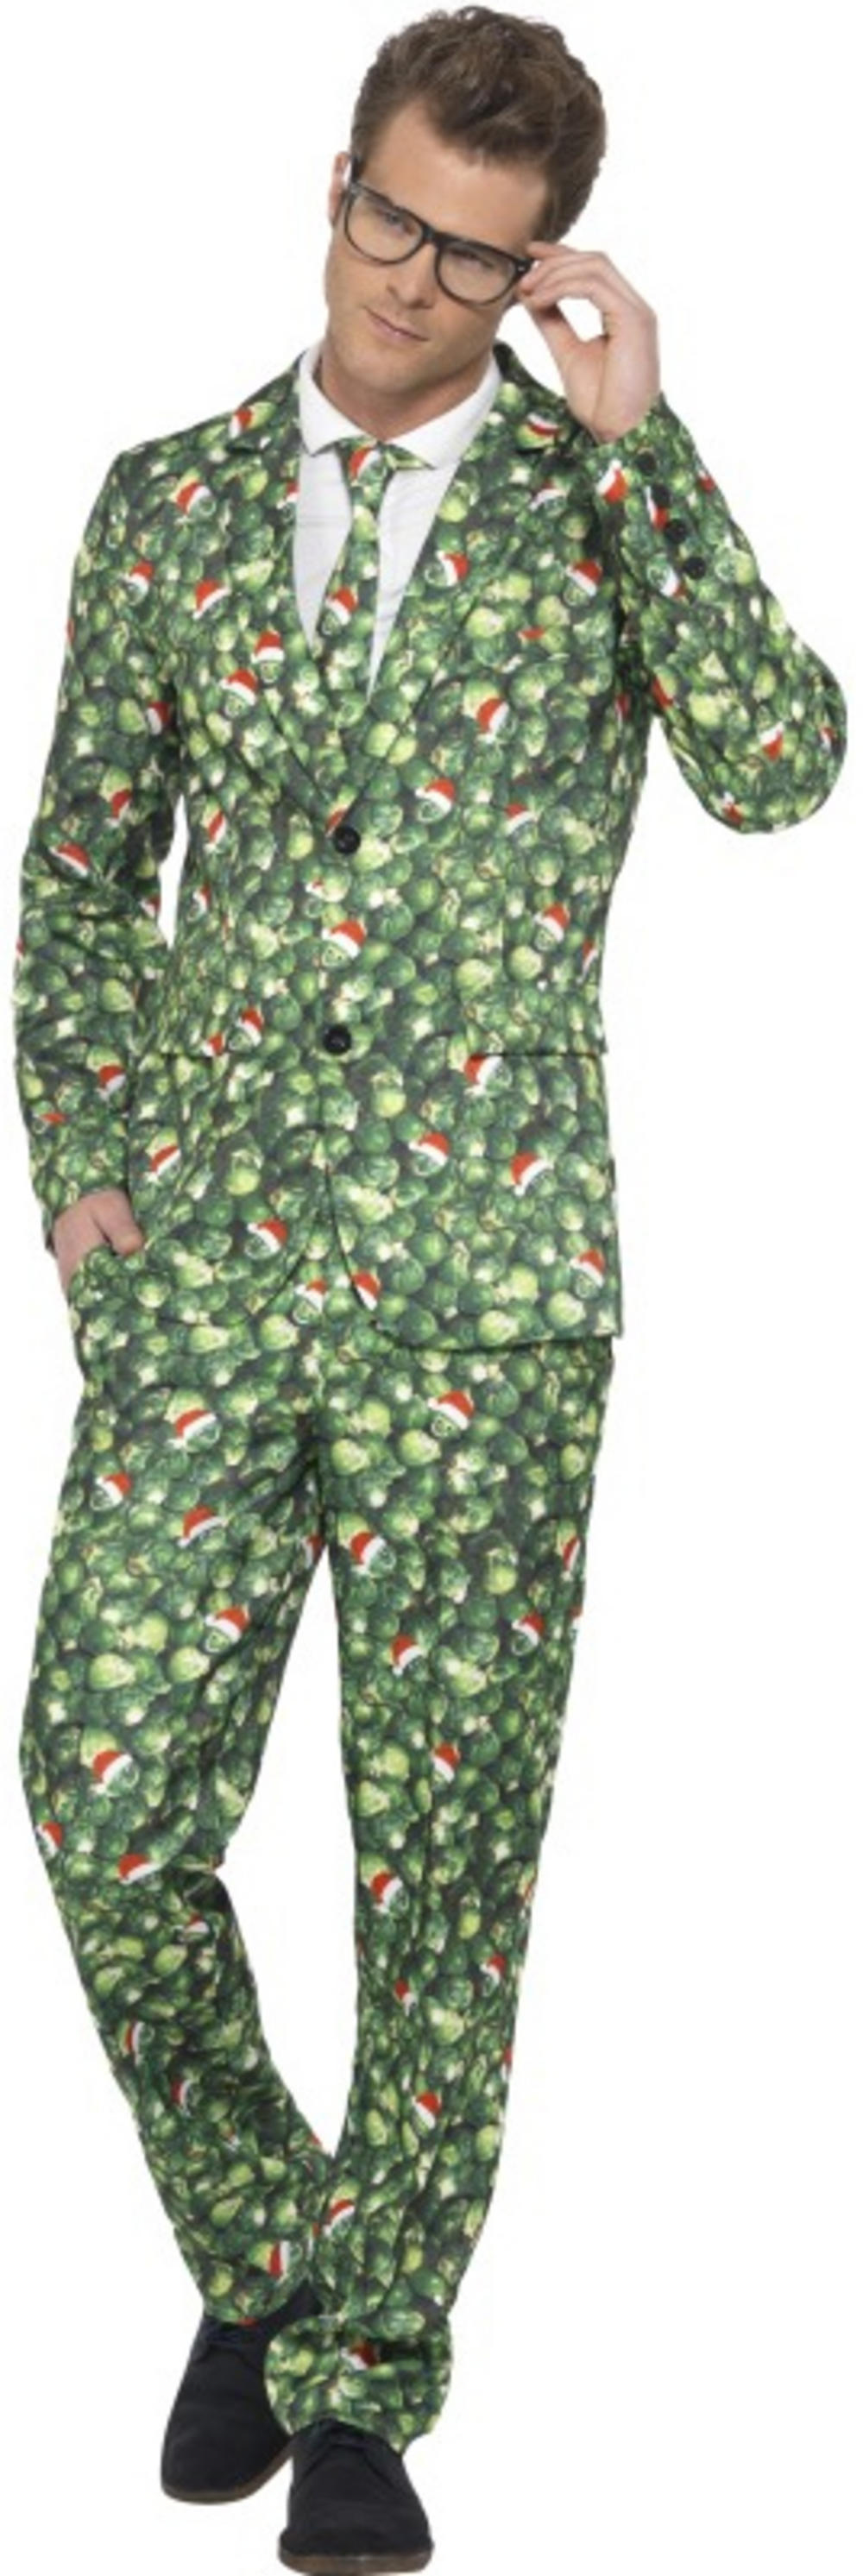 Brussle Sprout Suit Mens Costume